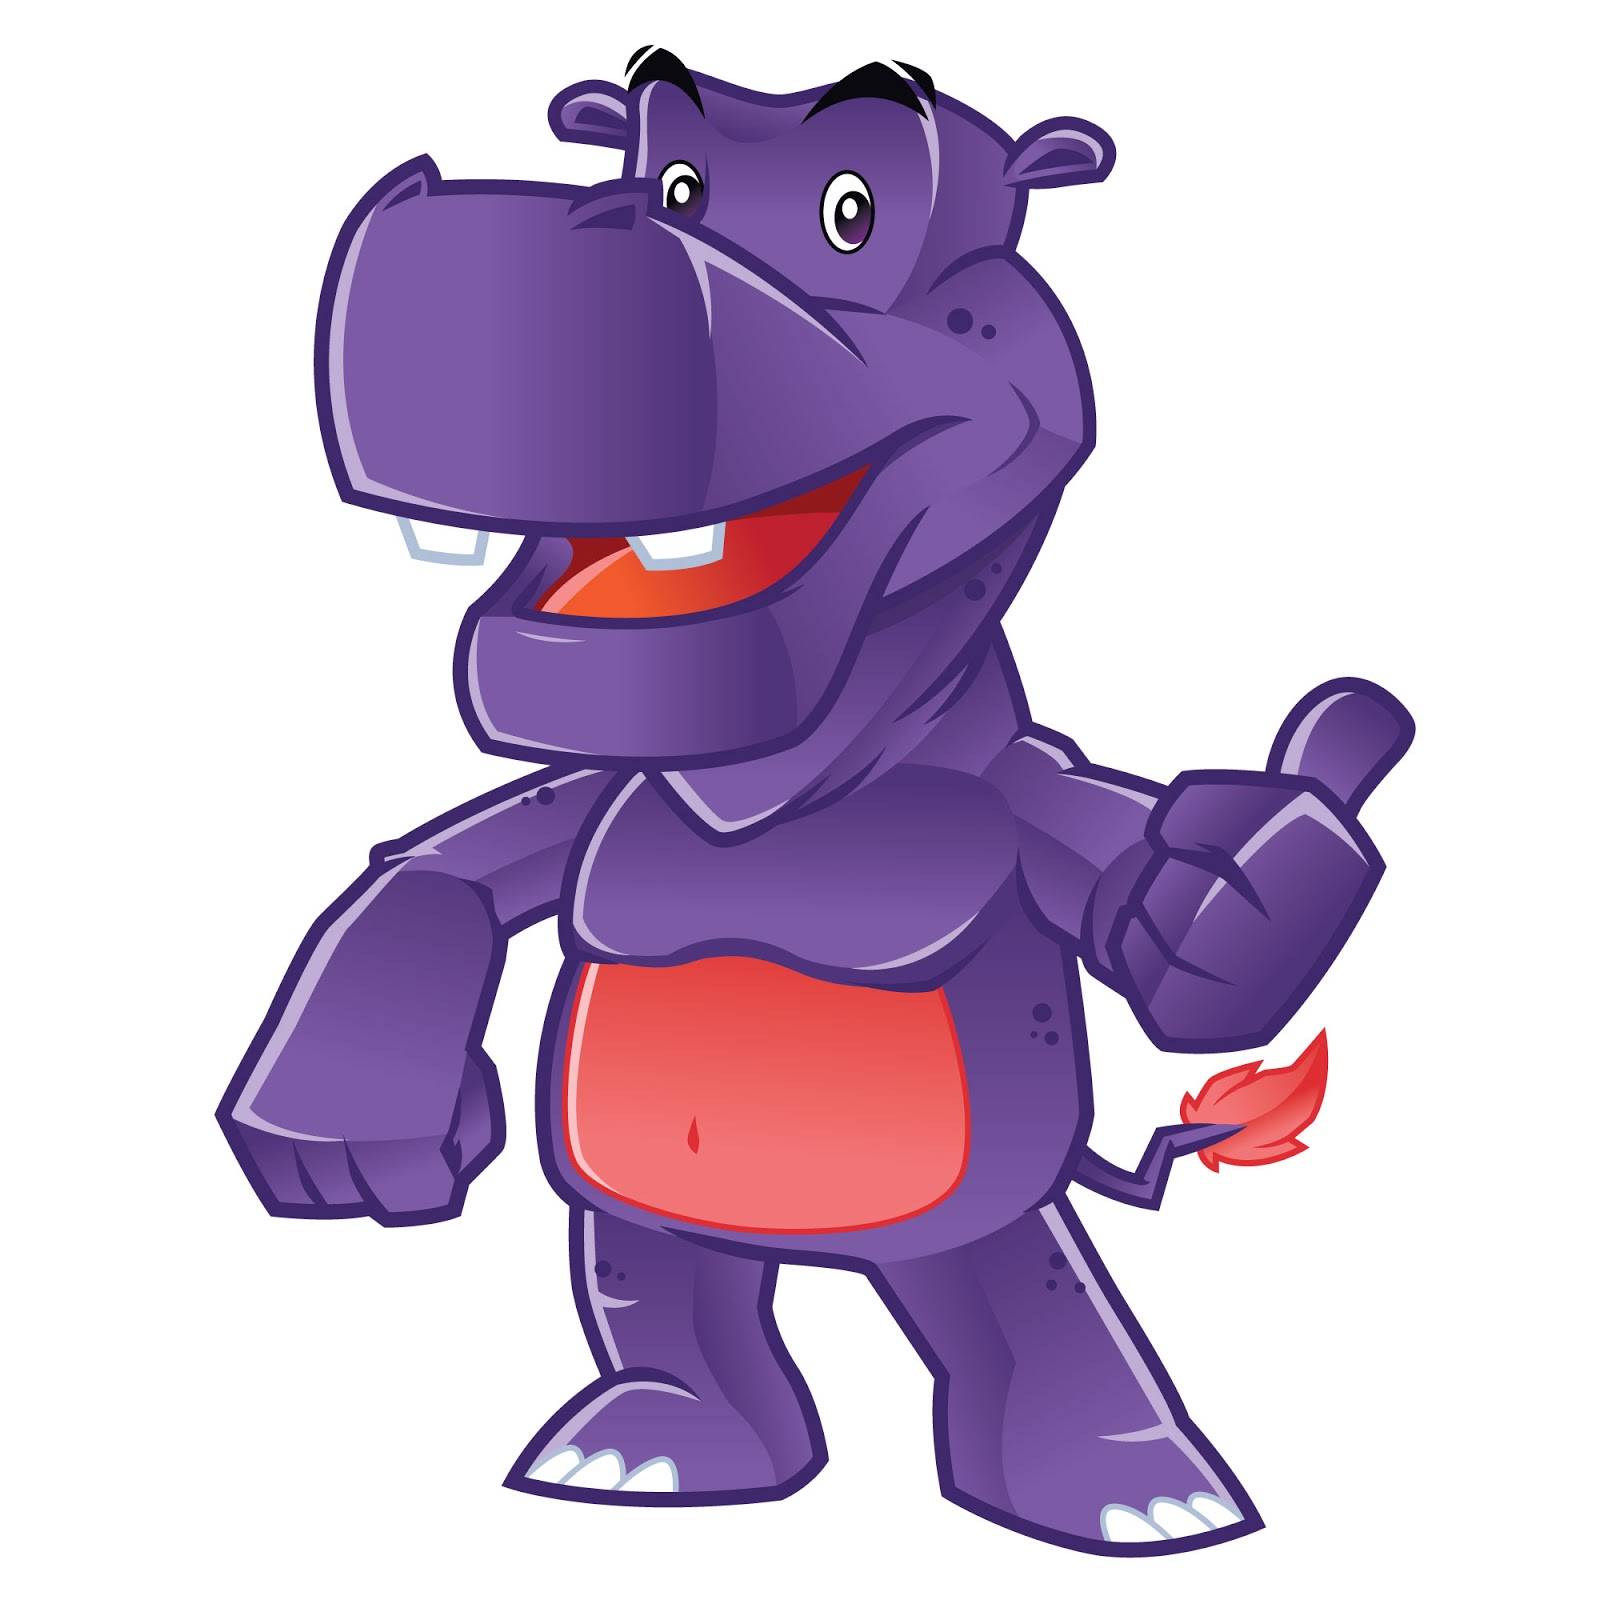 Hippo Character Free Download Vector CDR, AI, EPS and PNG Formats